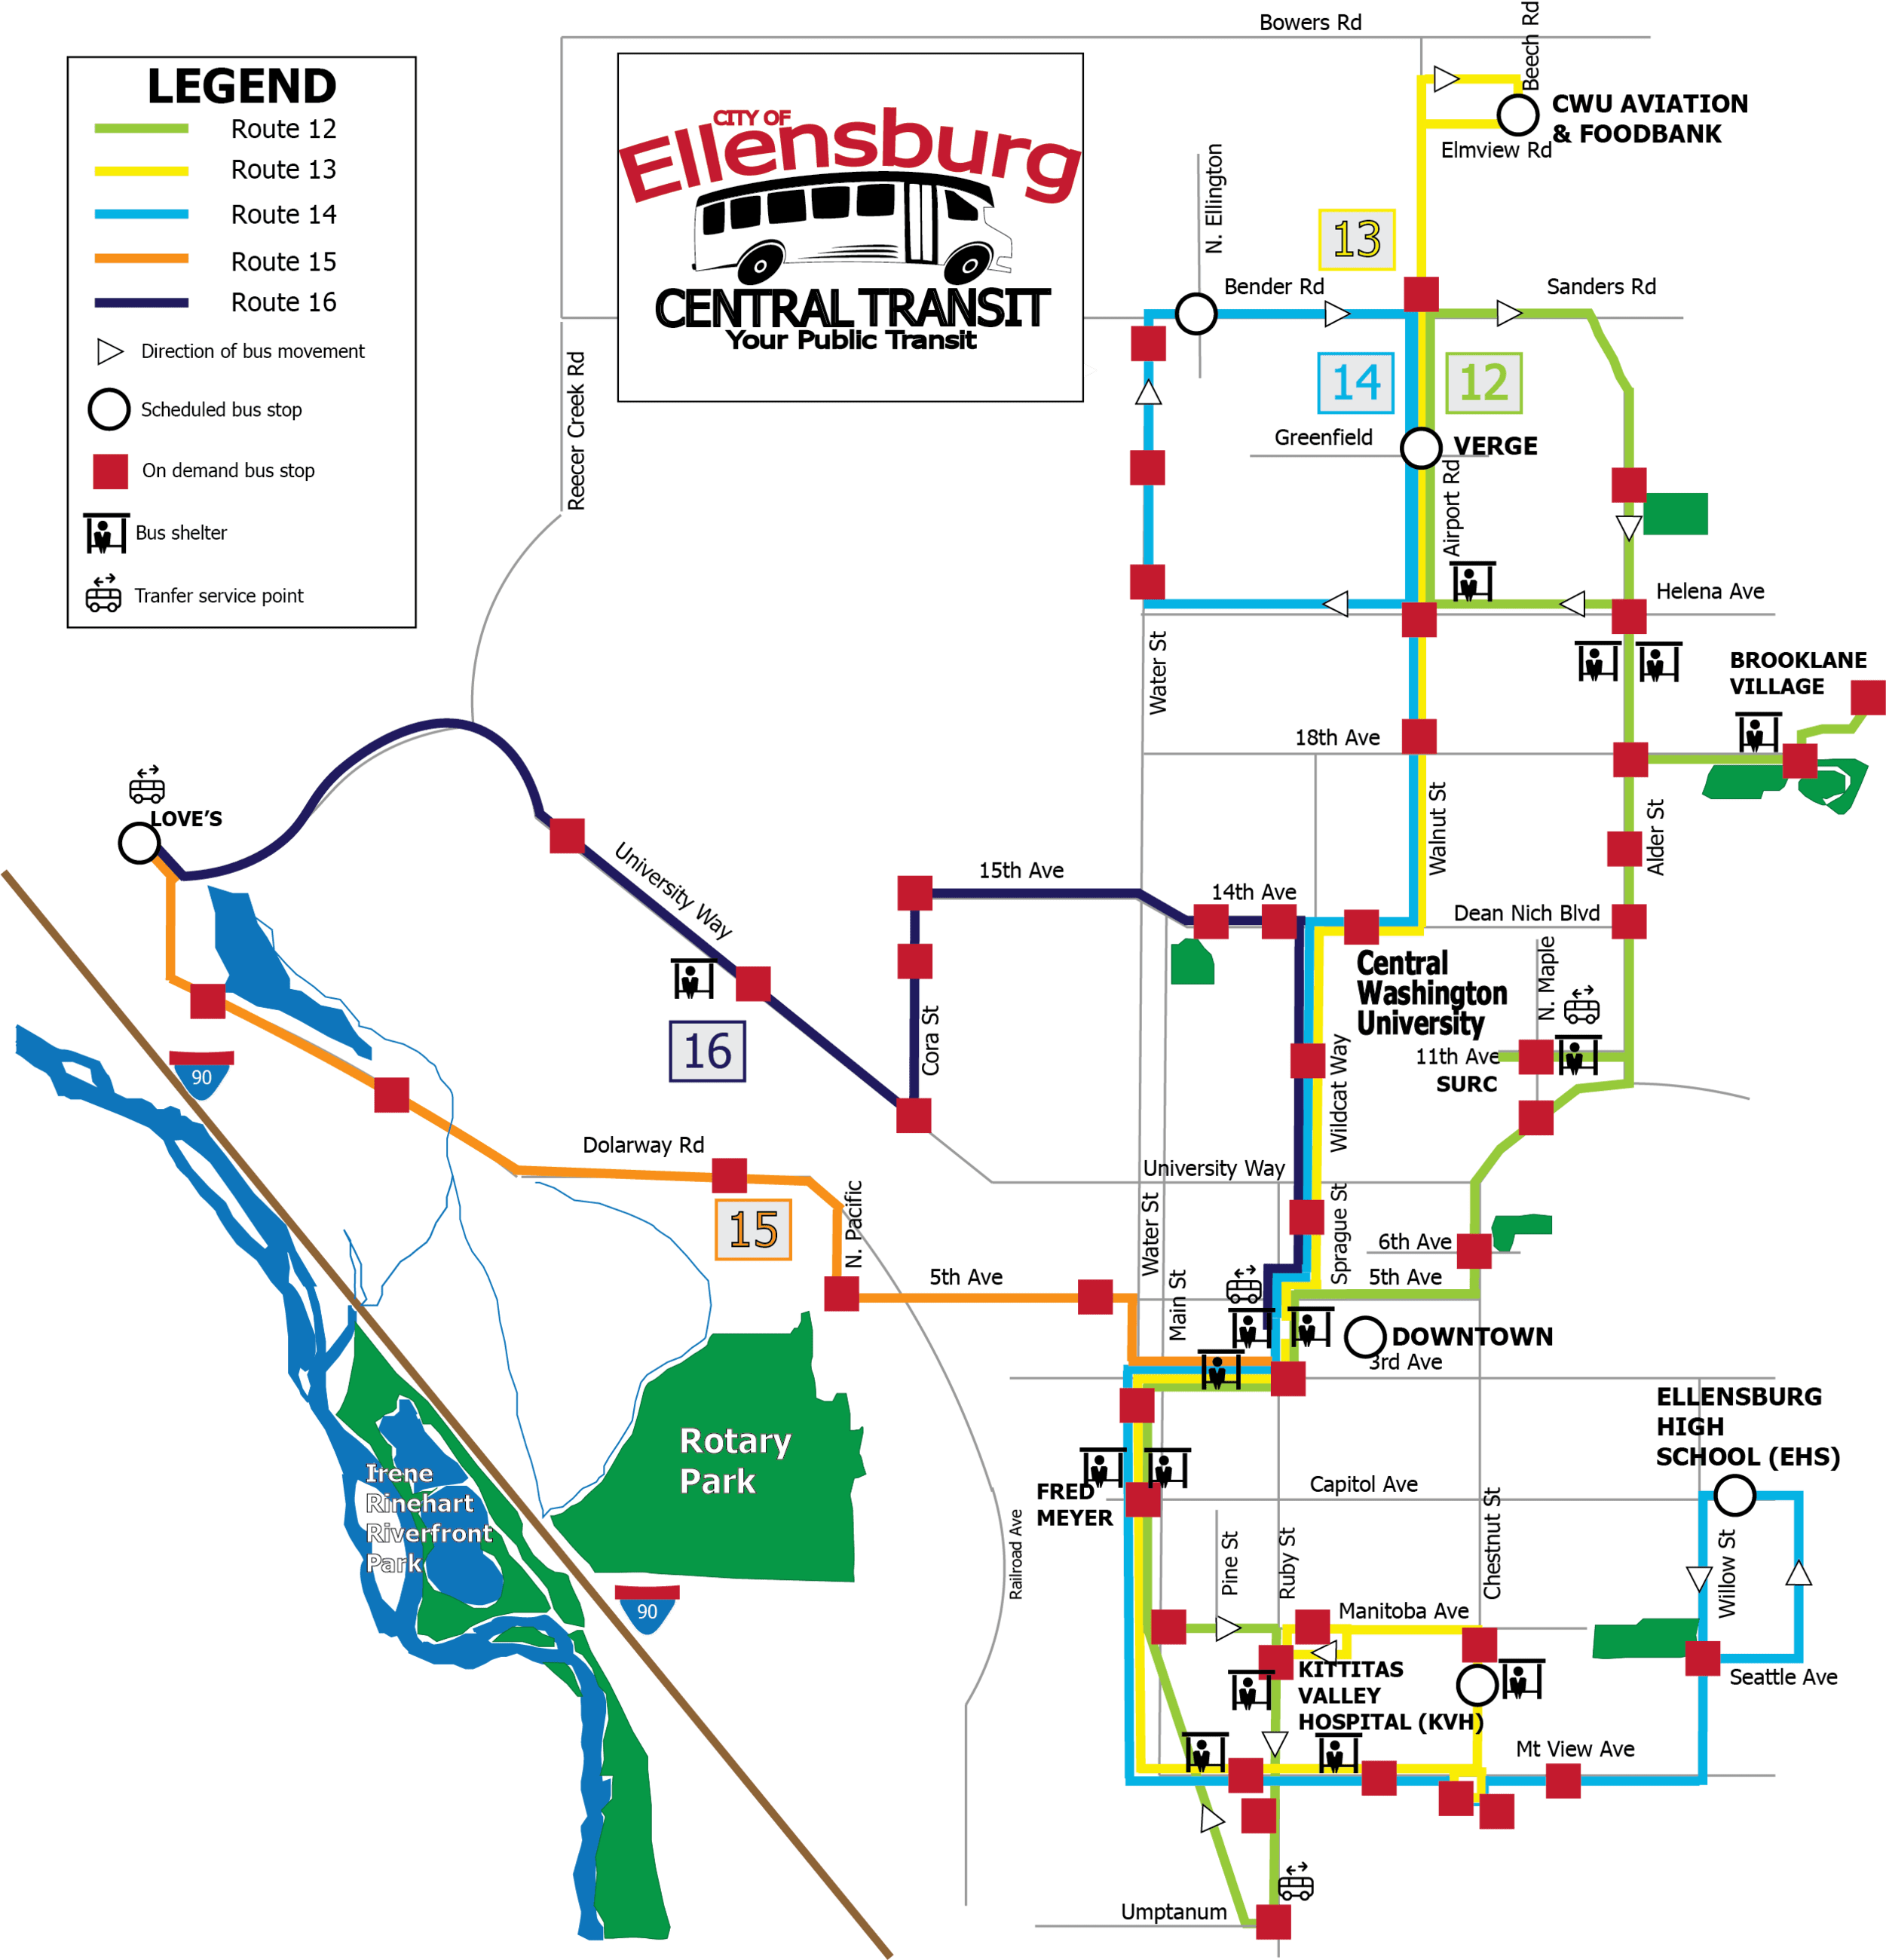 Ellensburg_Route_Update_system_map